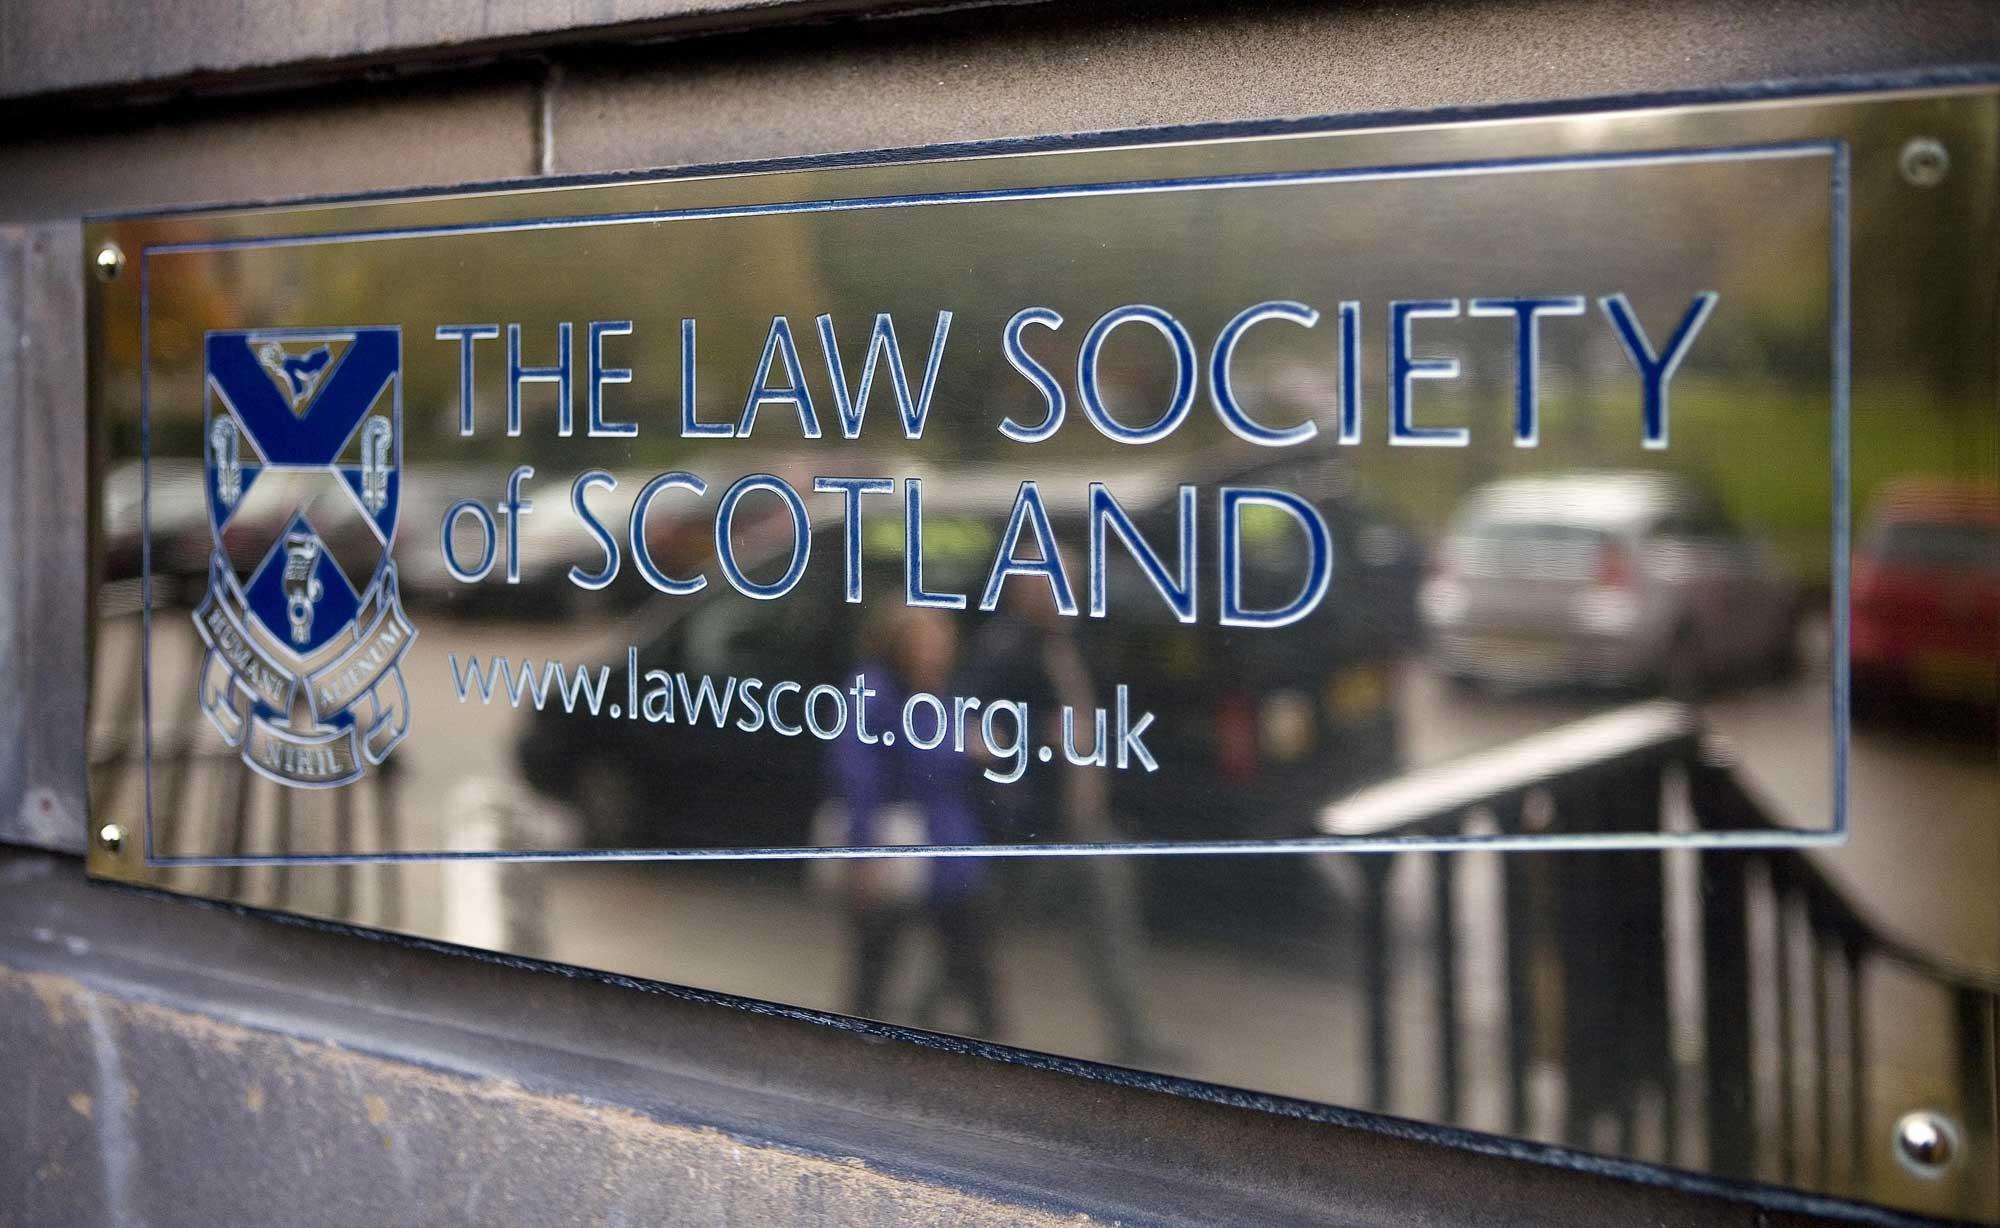 Scotland bids to regulate cross-border firms and attract legal business